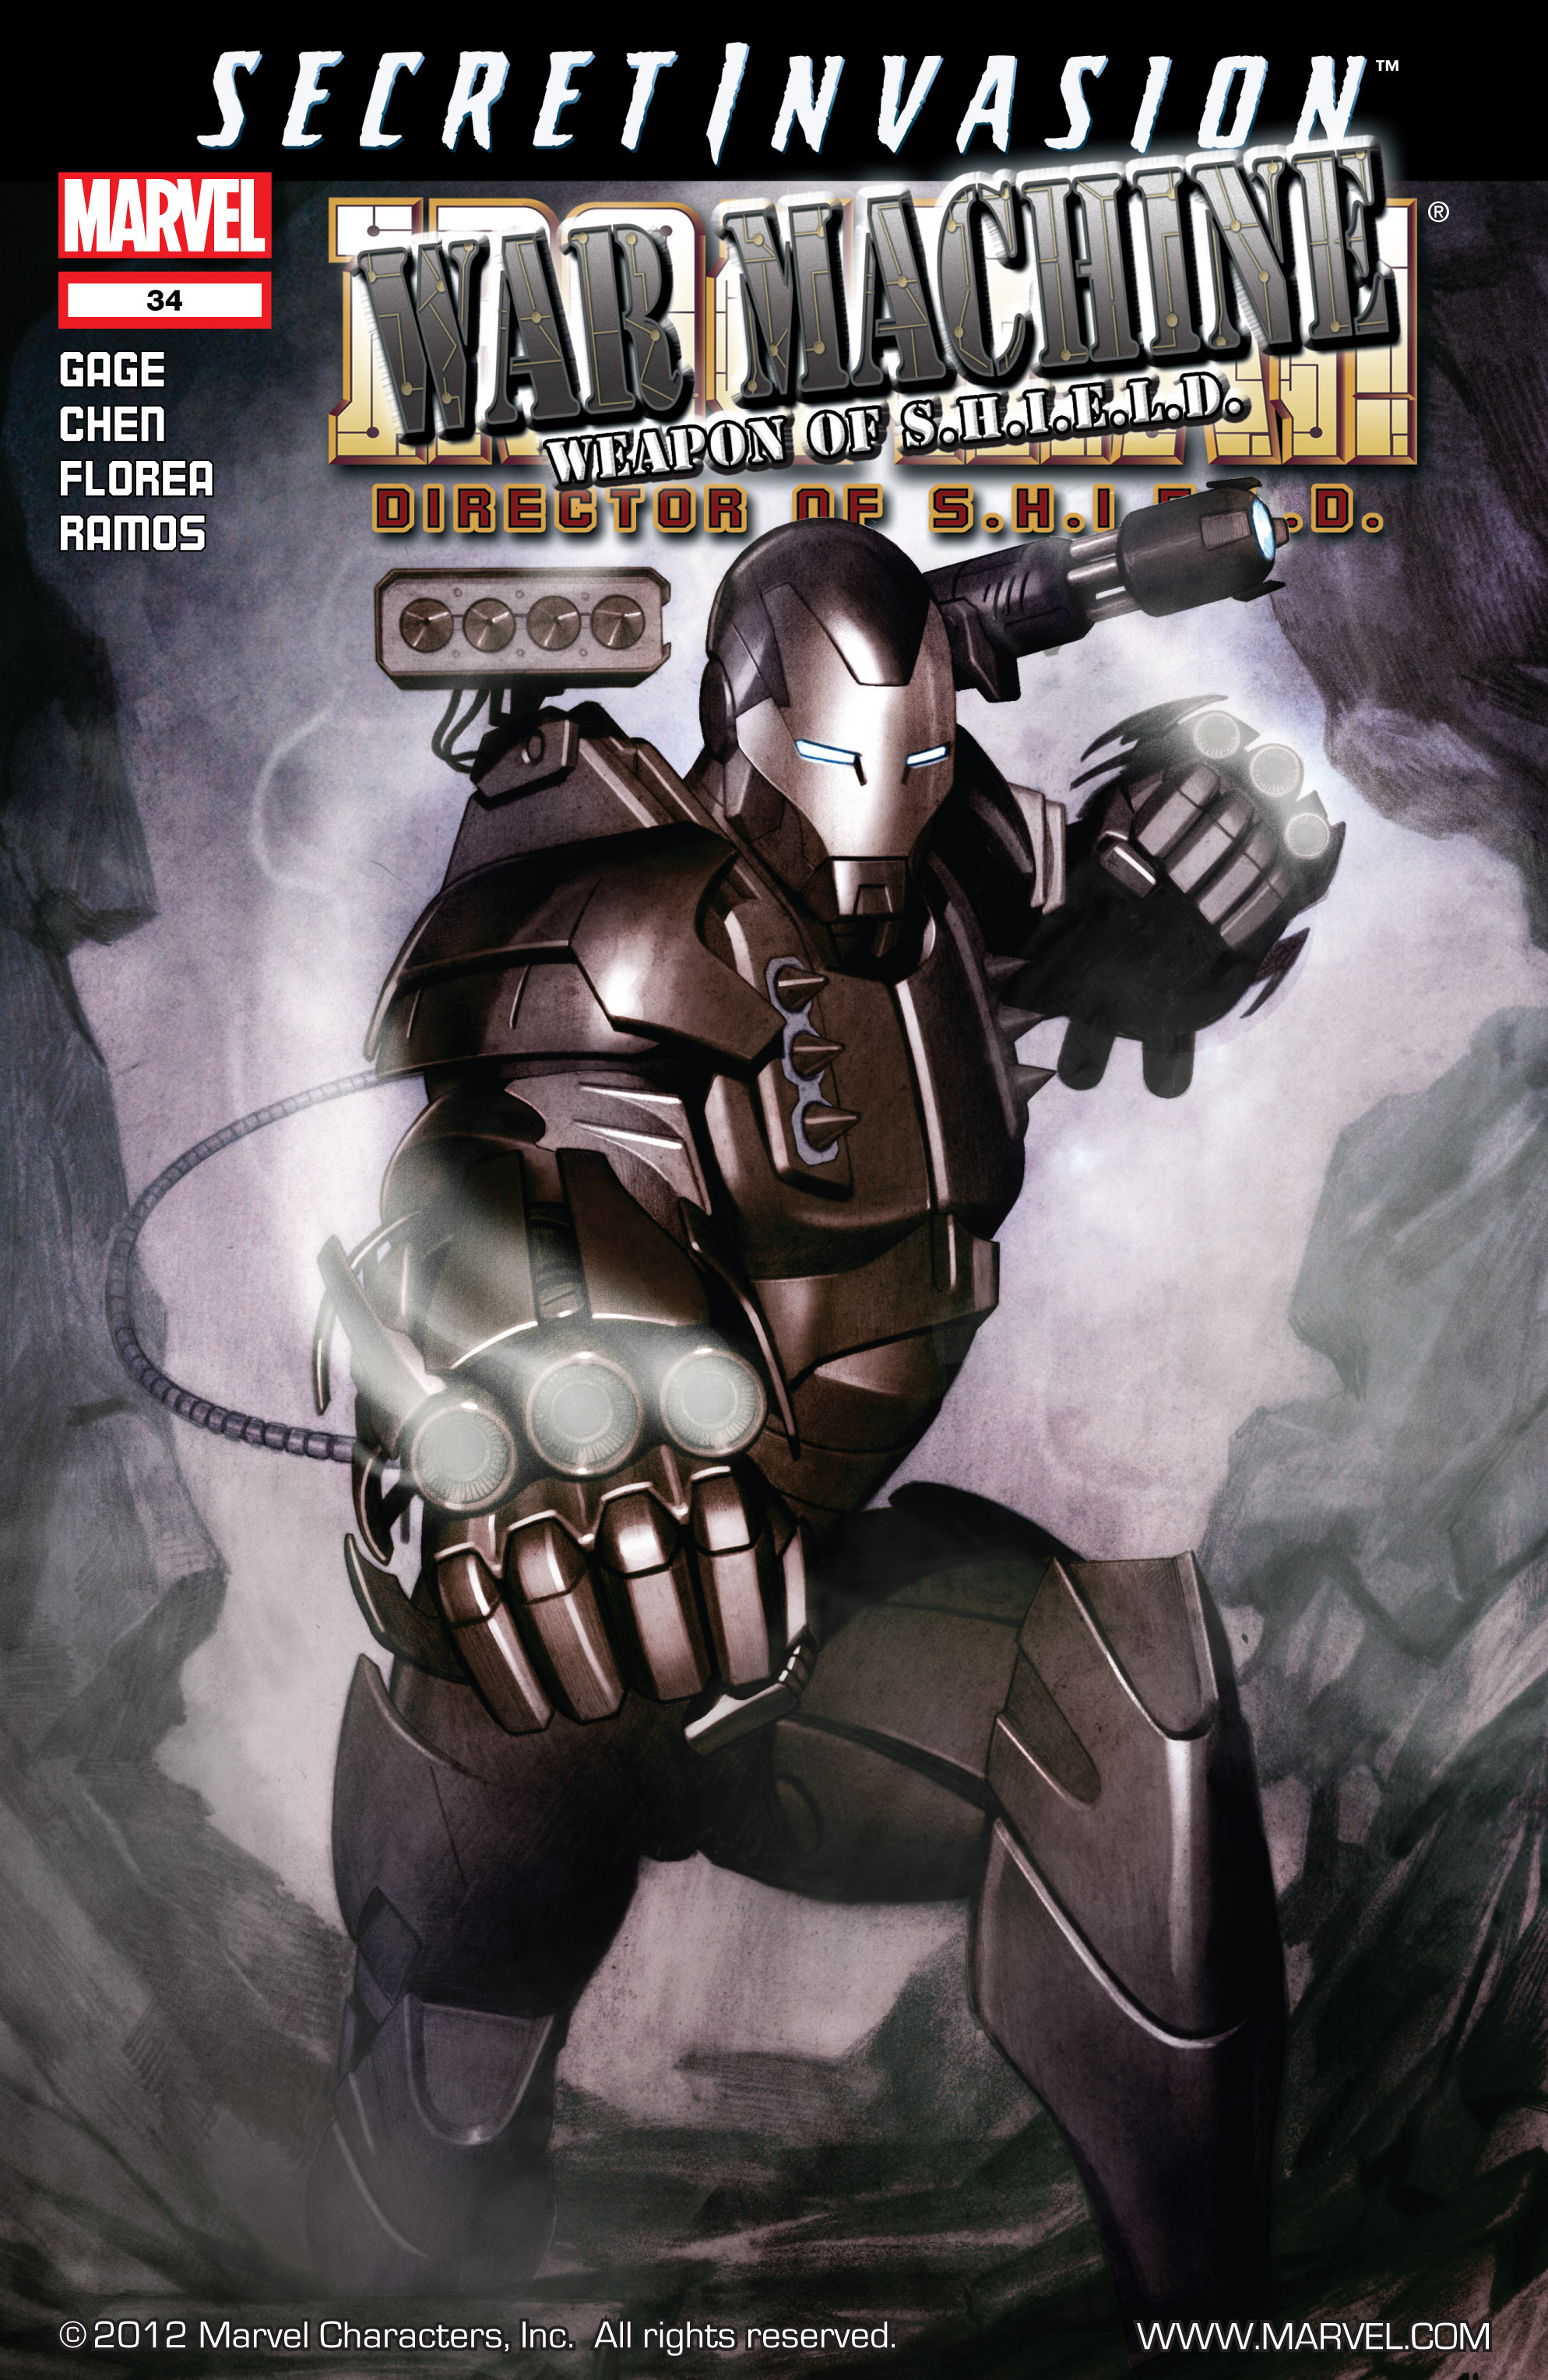 Iron Man: Director of S.H.I.E.L.D. Vol 1 34